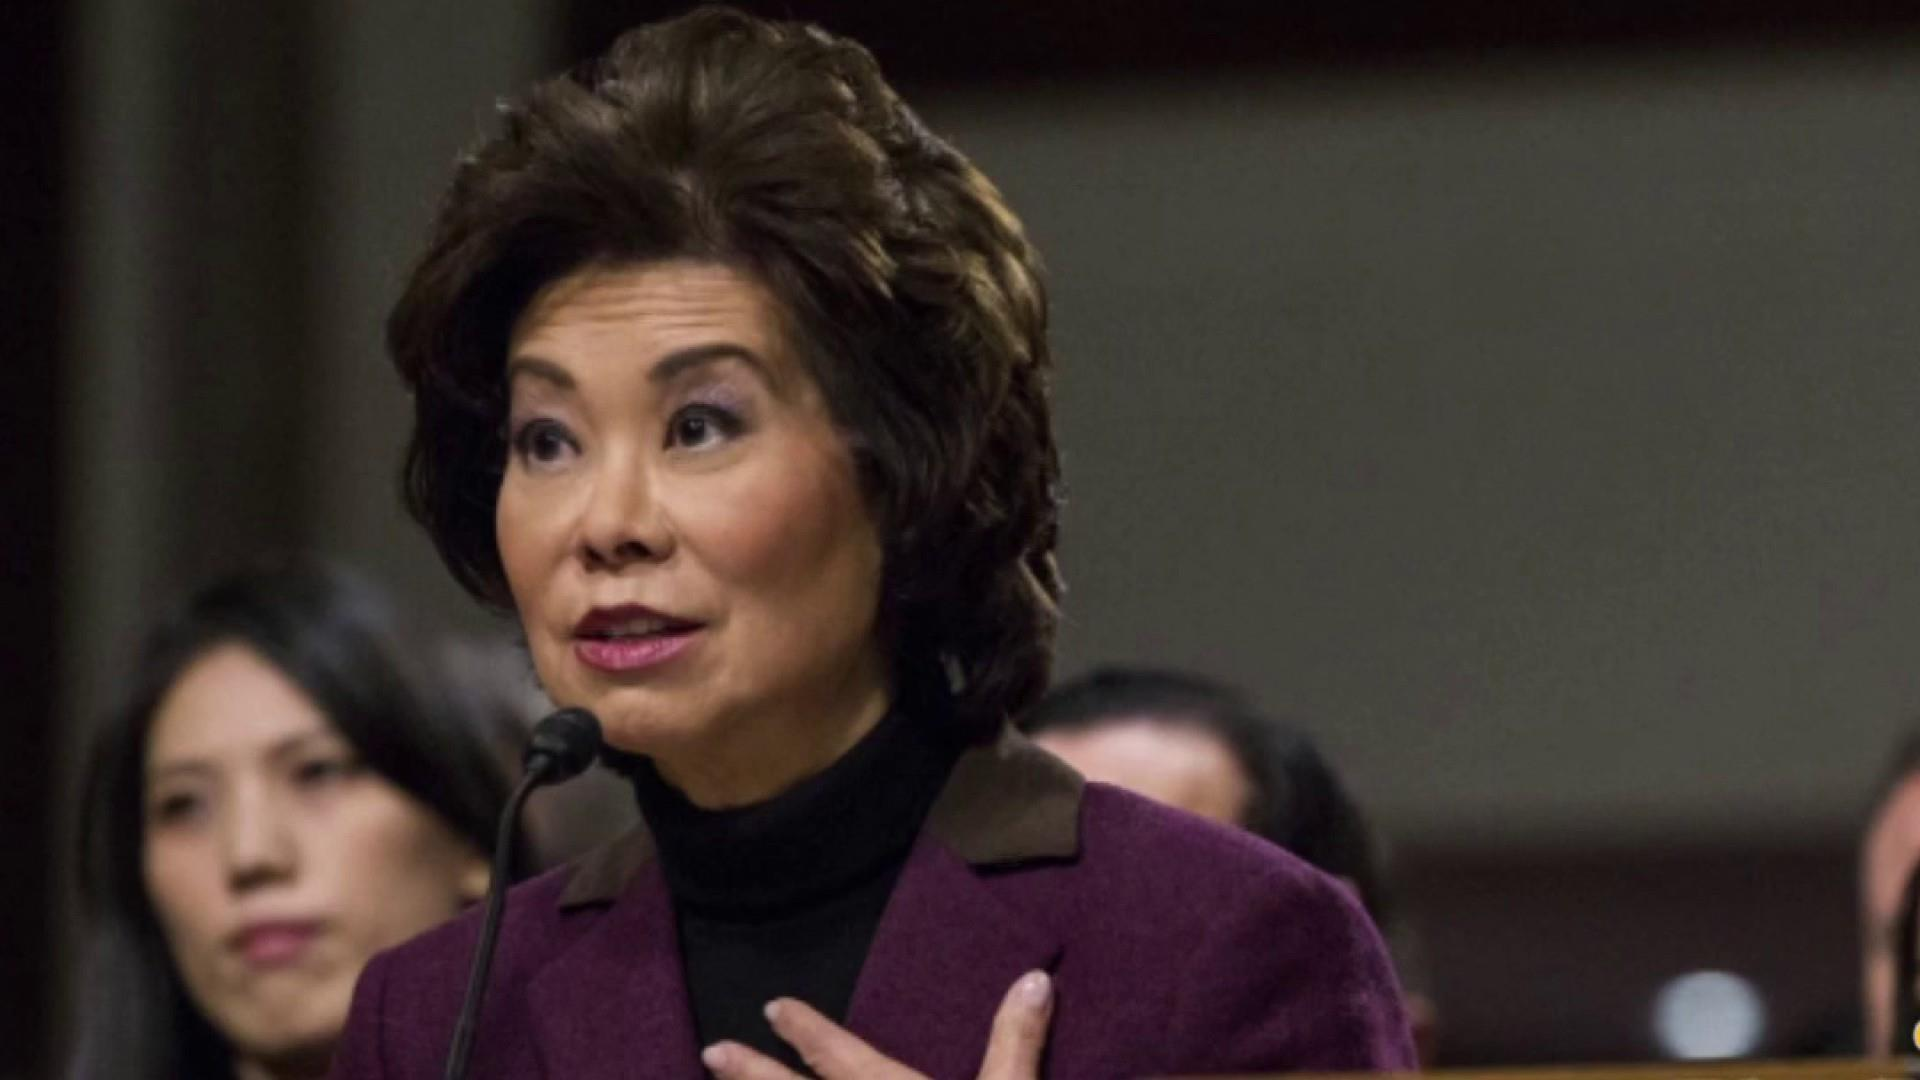 Chao corruption shocking even for scandal-plagued Trump cabinet